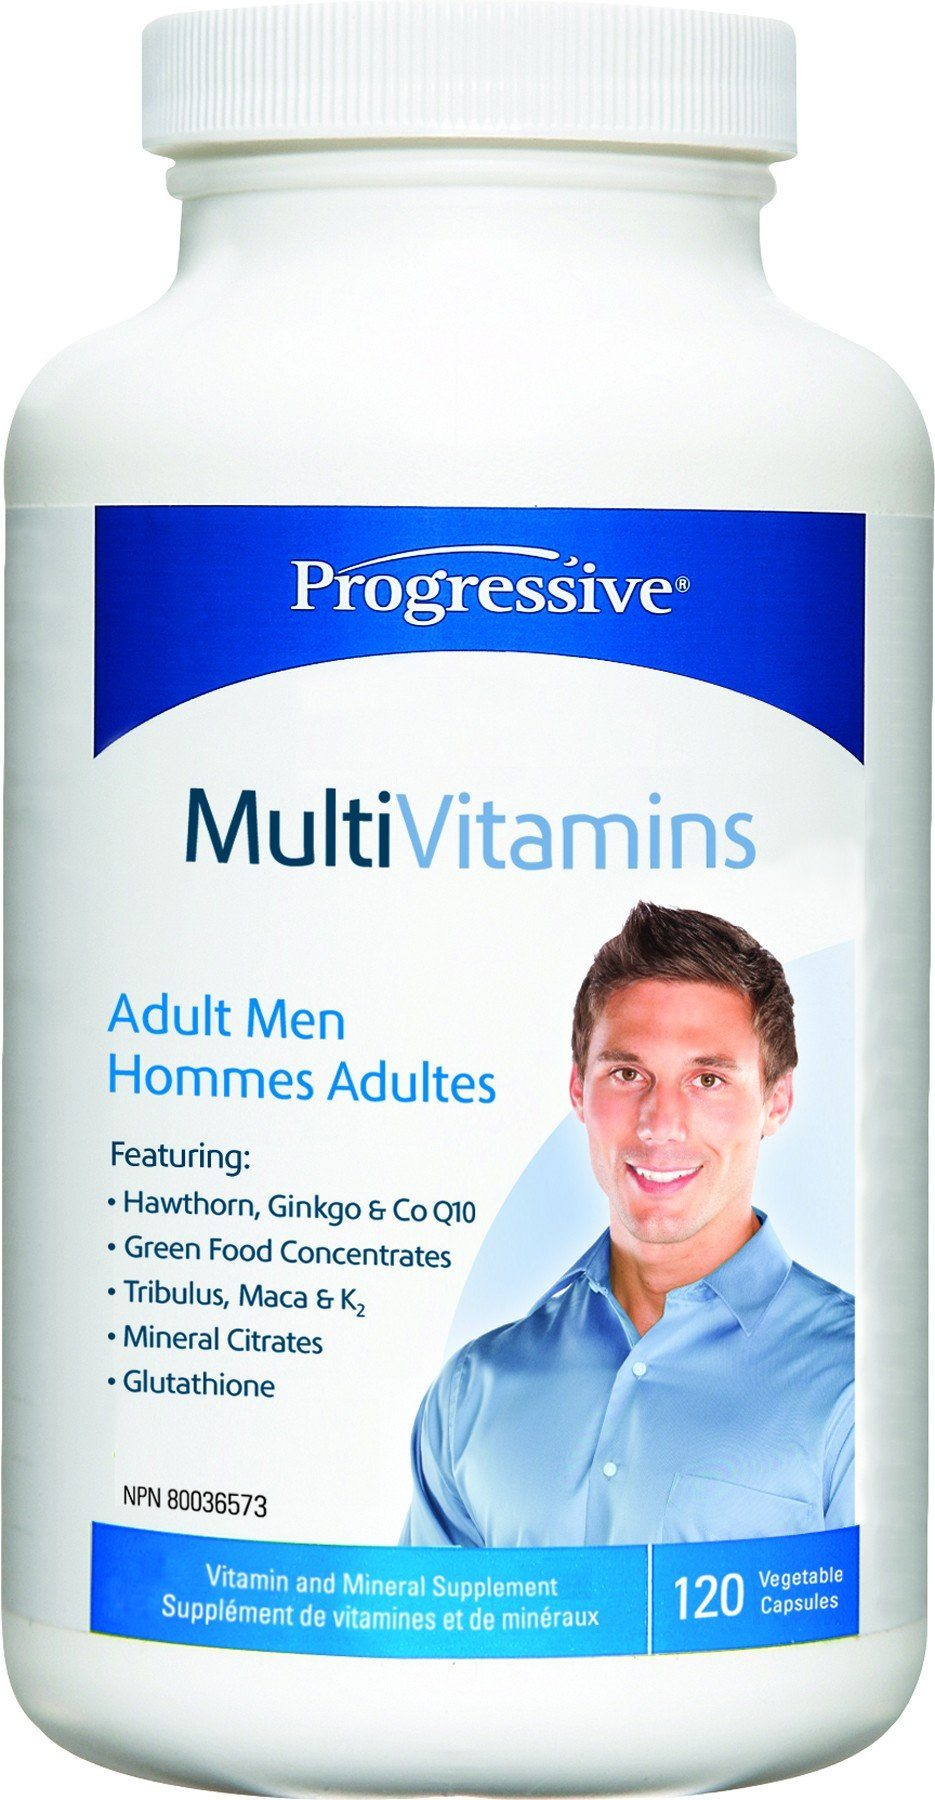 Supplements & Vitamins - Progressive - MultiVitamins For Adult Men, 120 Caps